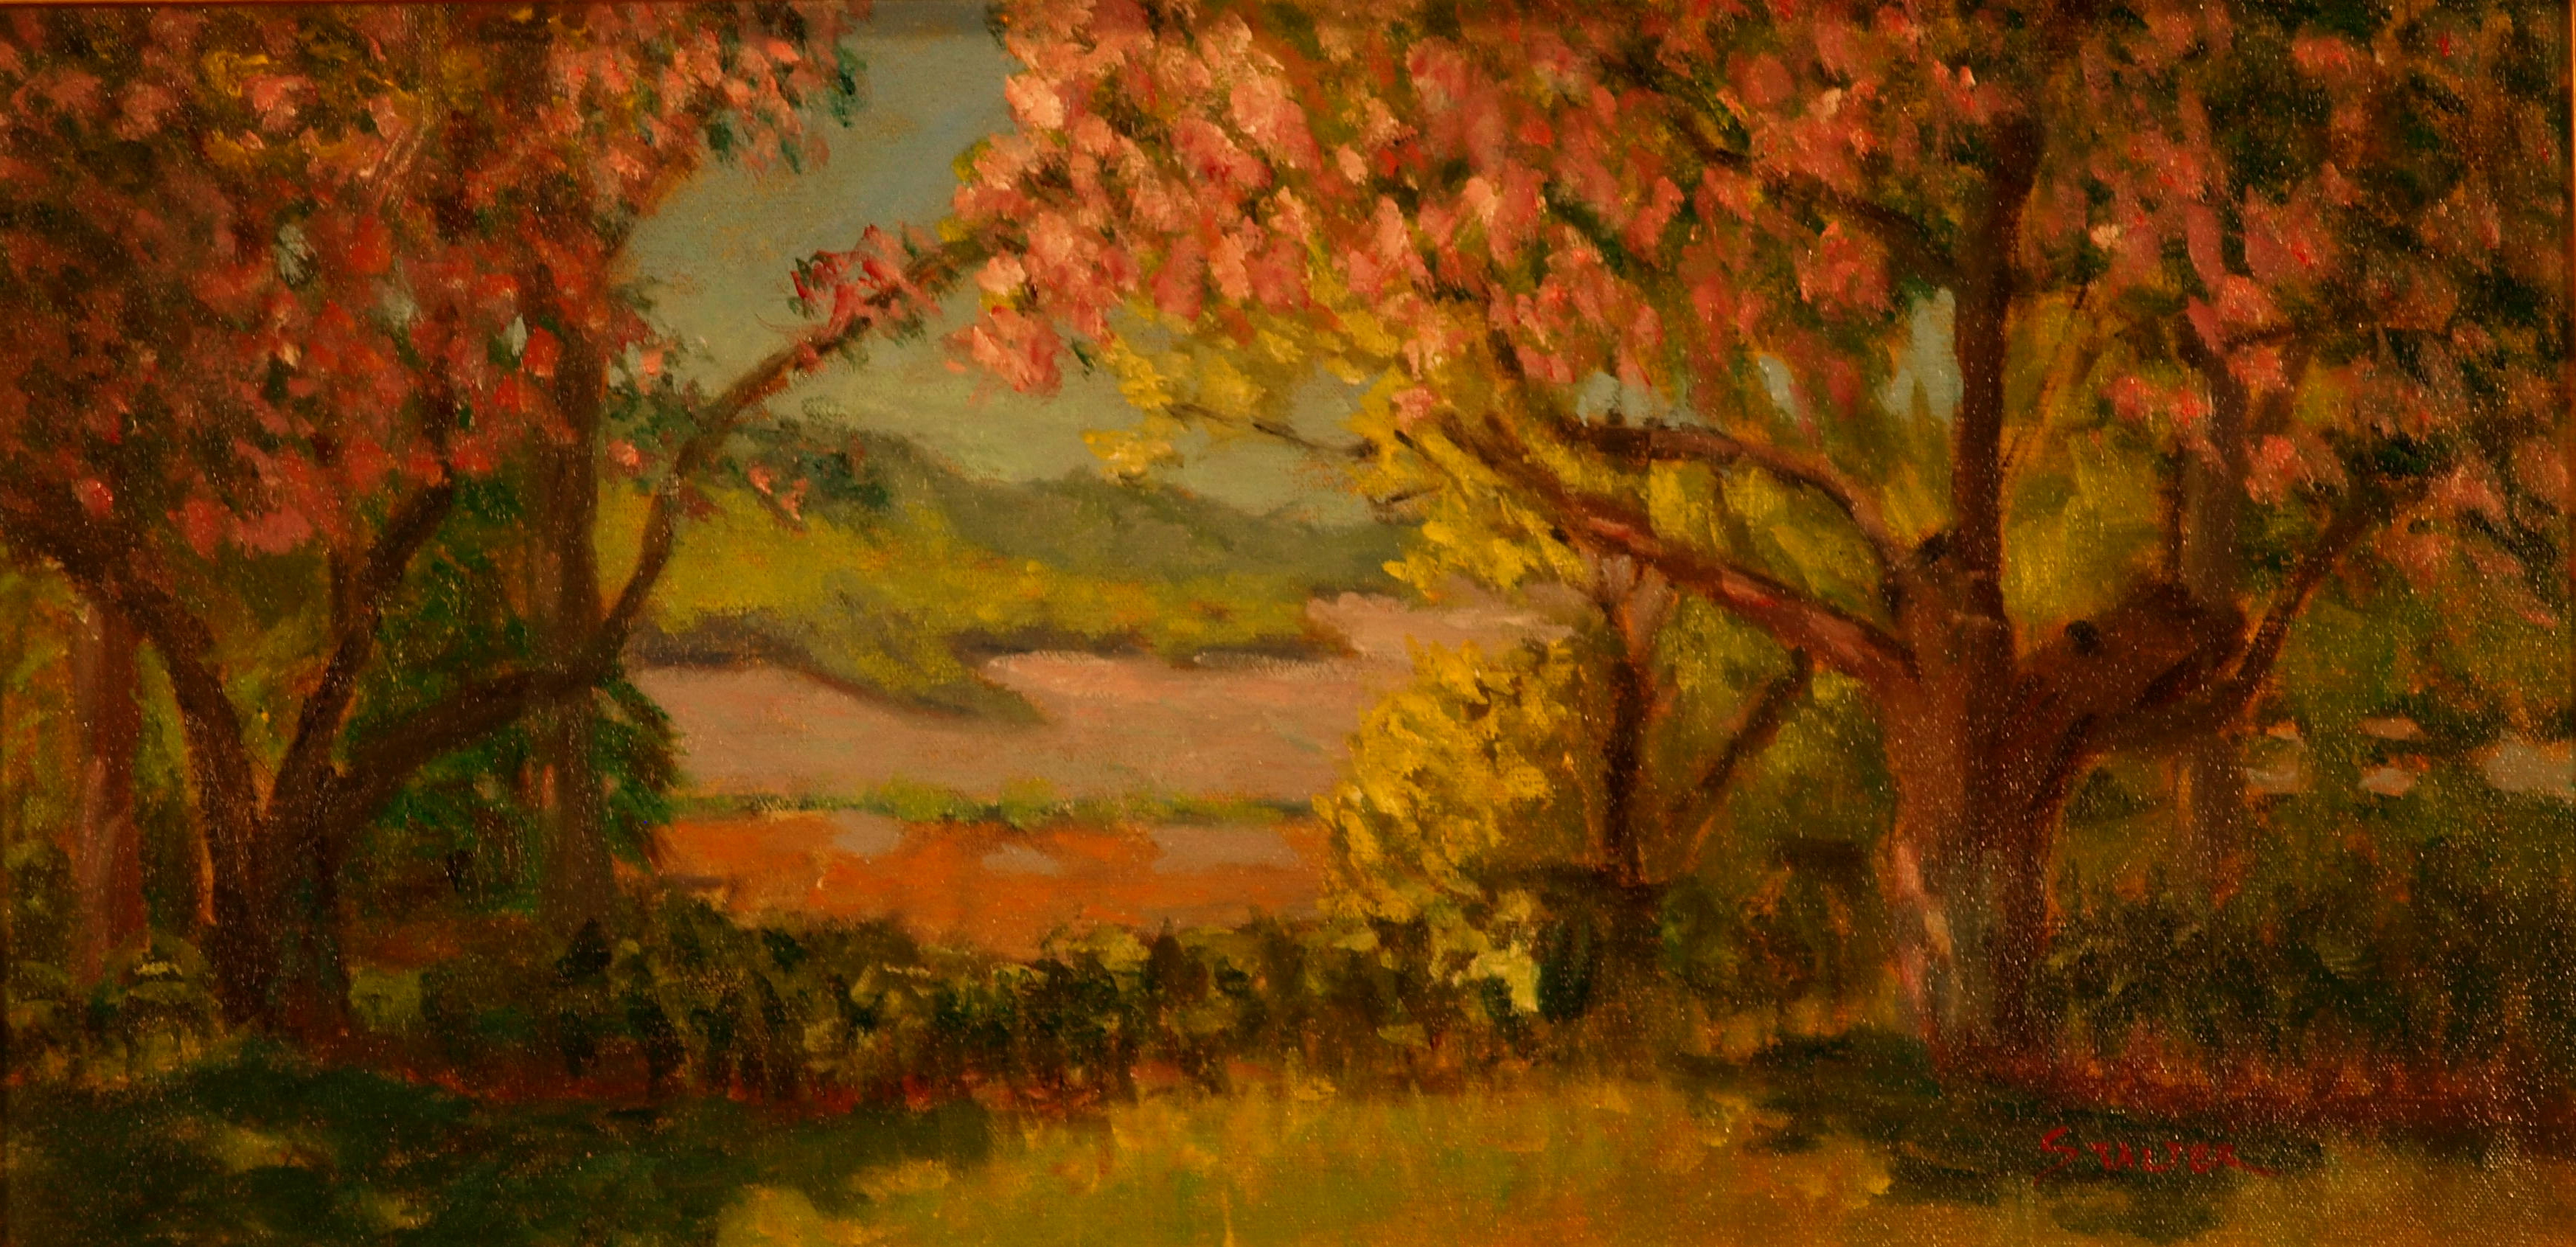 Cherry Blossoms along the Hudson, Oil on Canvas, 12 x 24 Inches, by Richard Stalter, $450